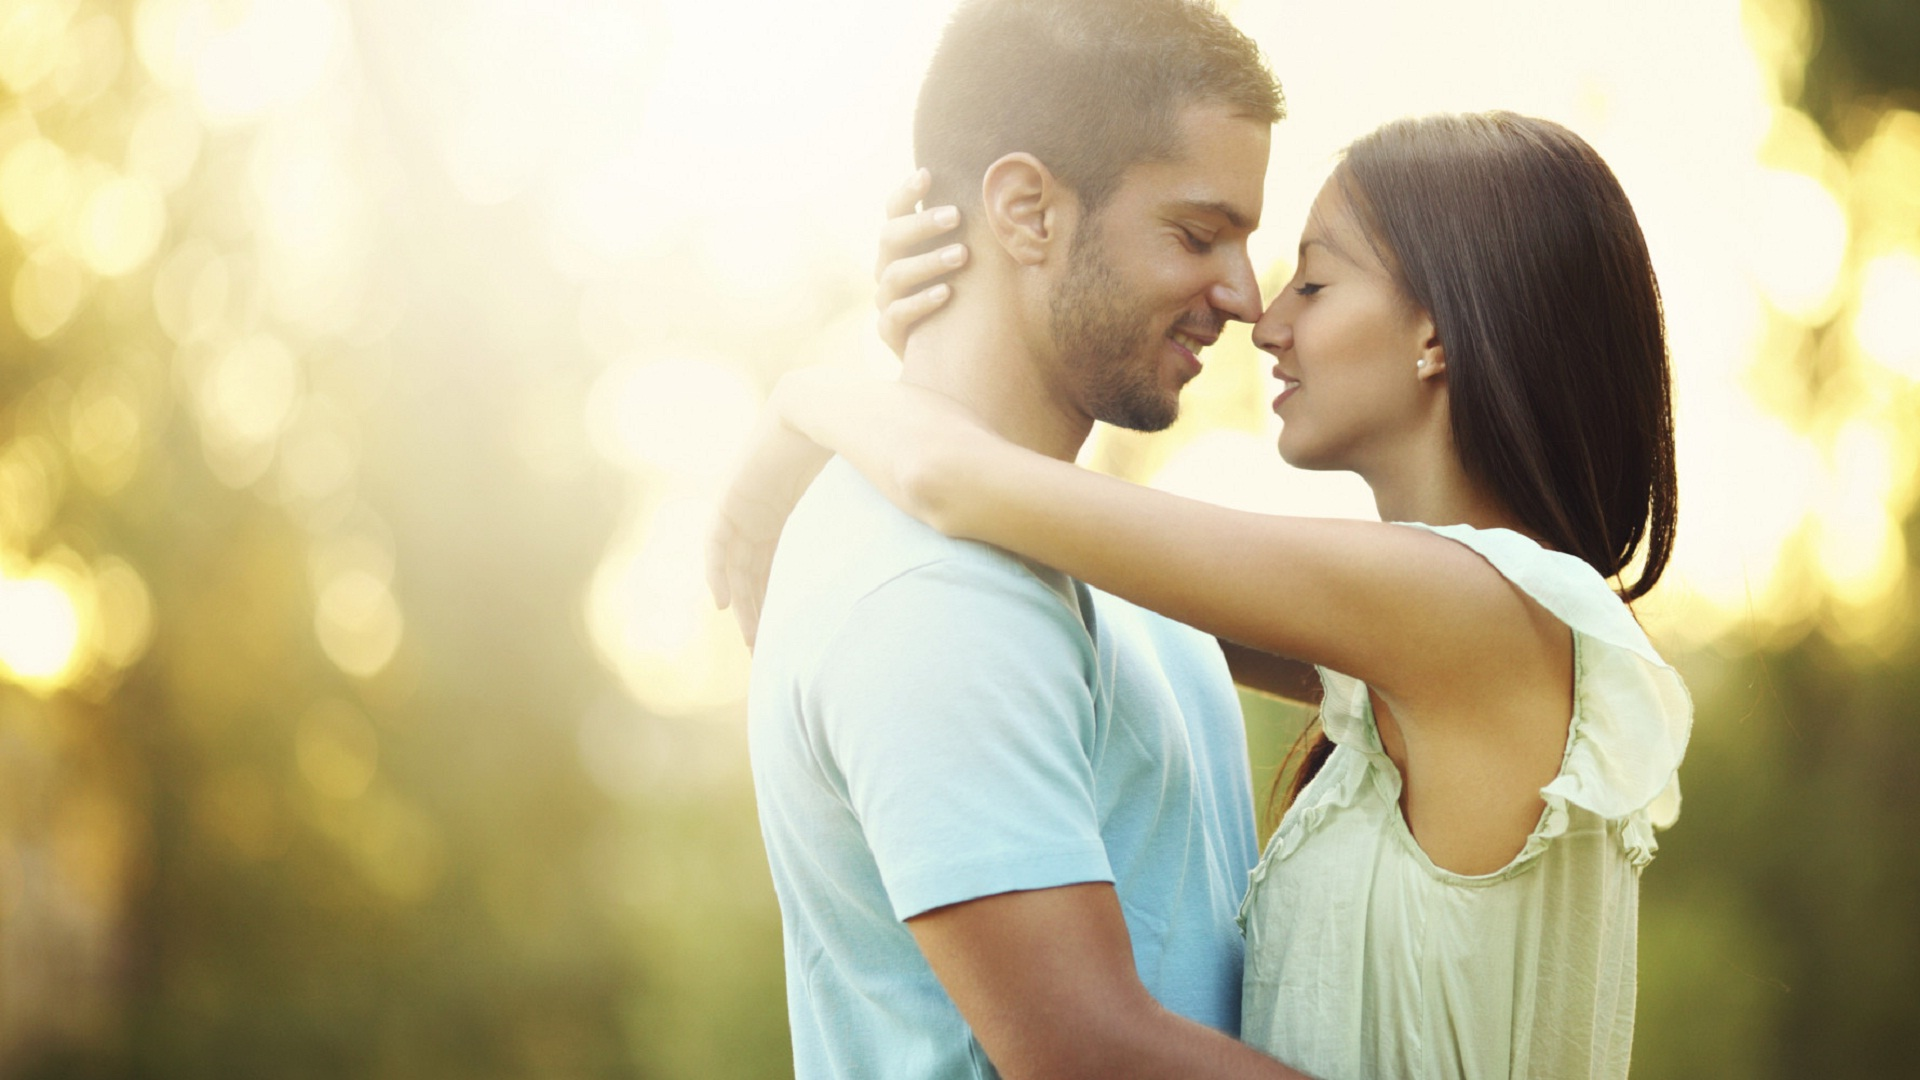 Happy young couple love and romance feelings   HD Wallpapers Rocks